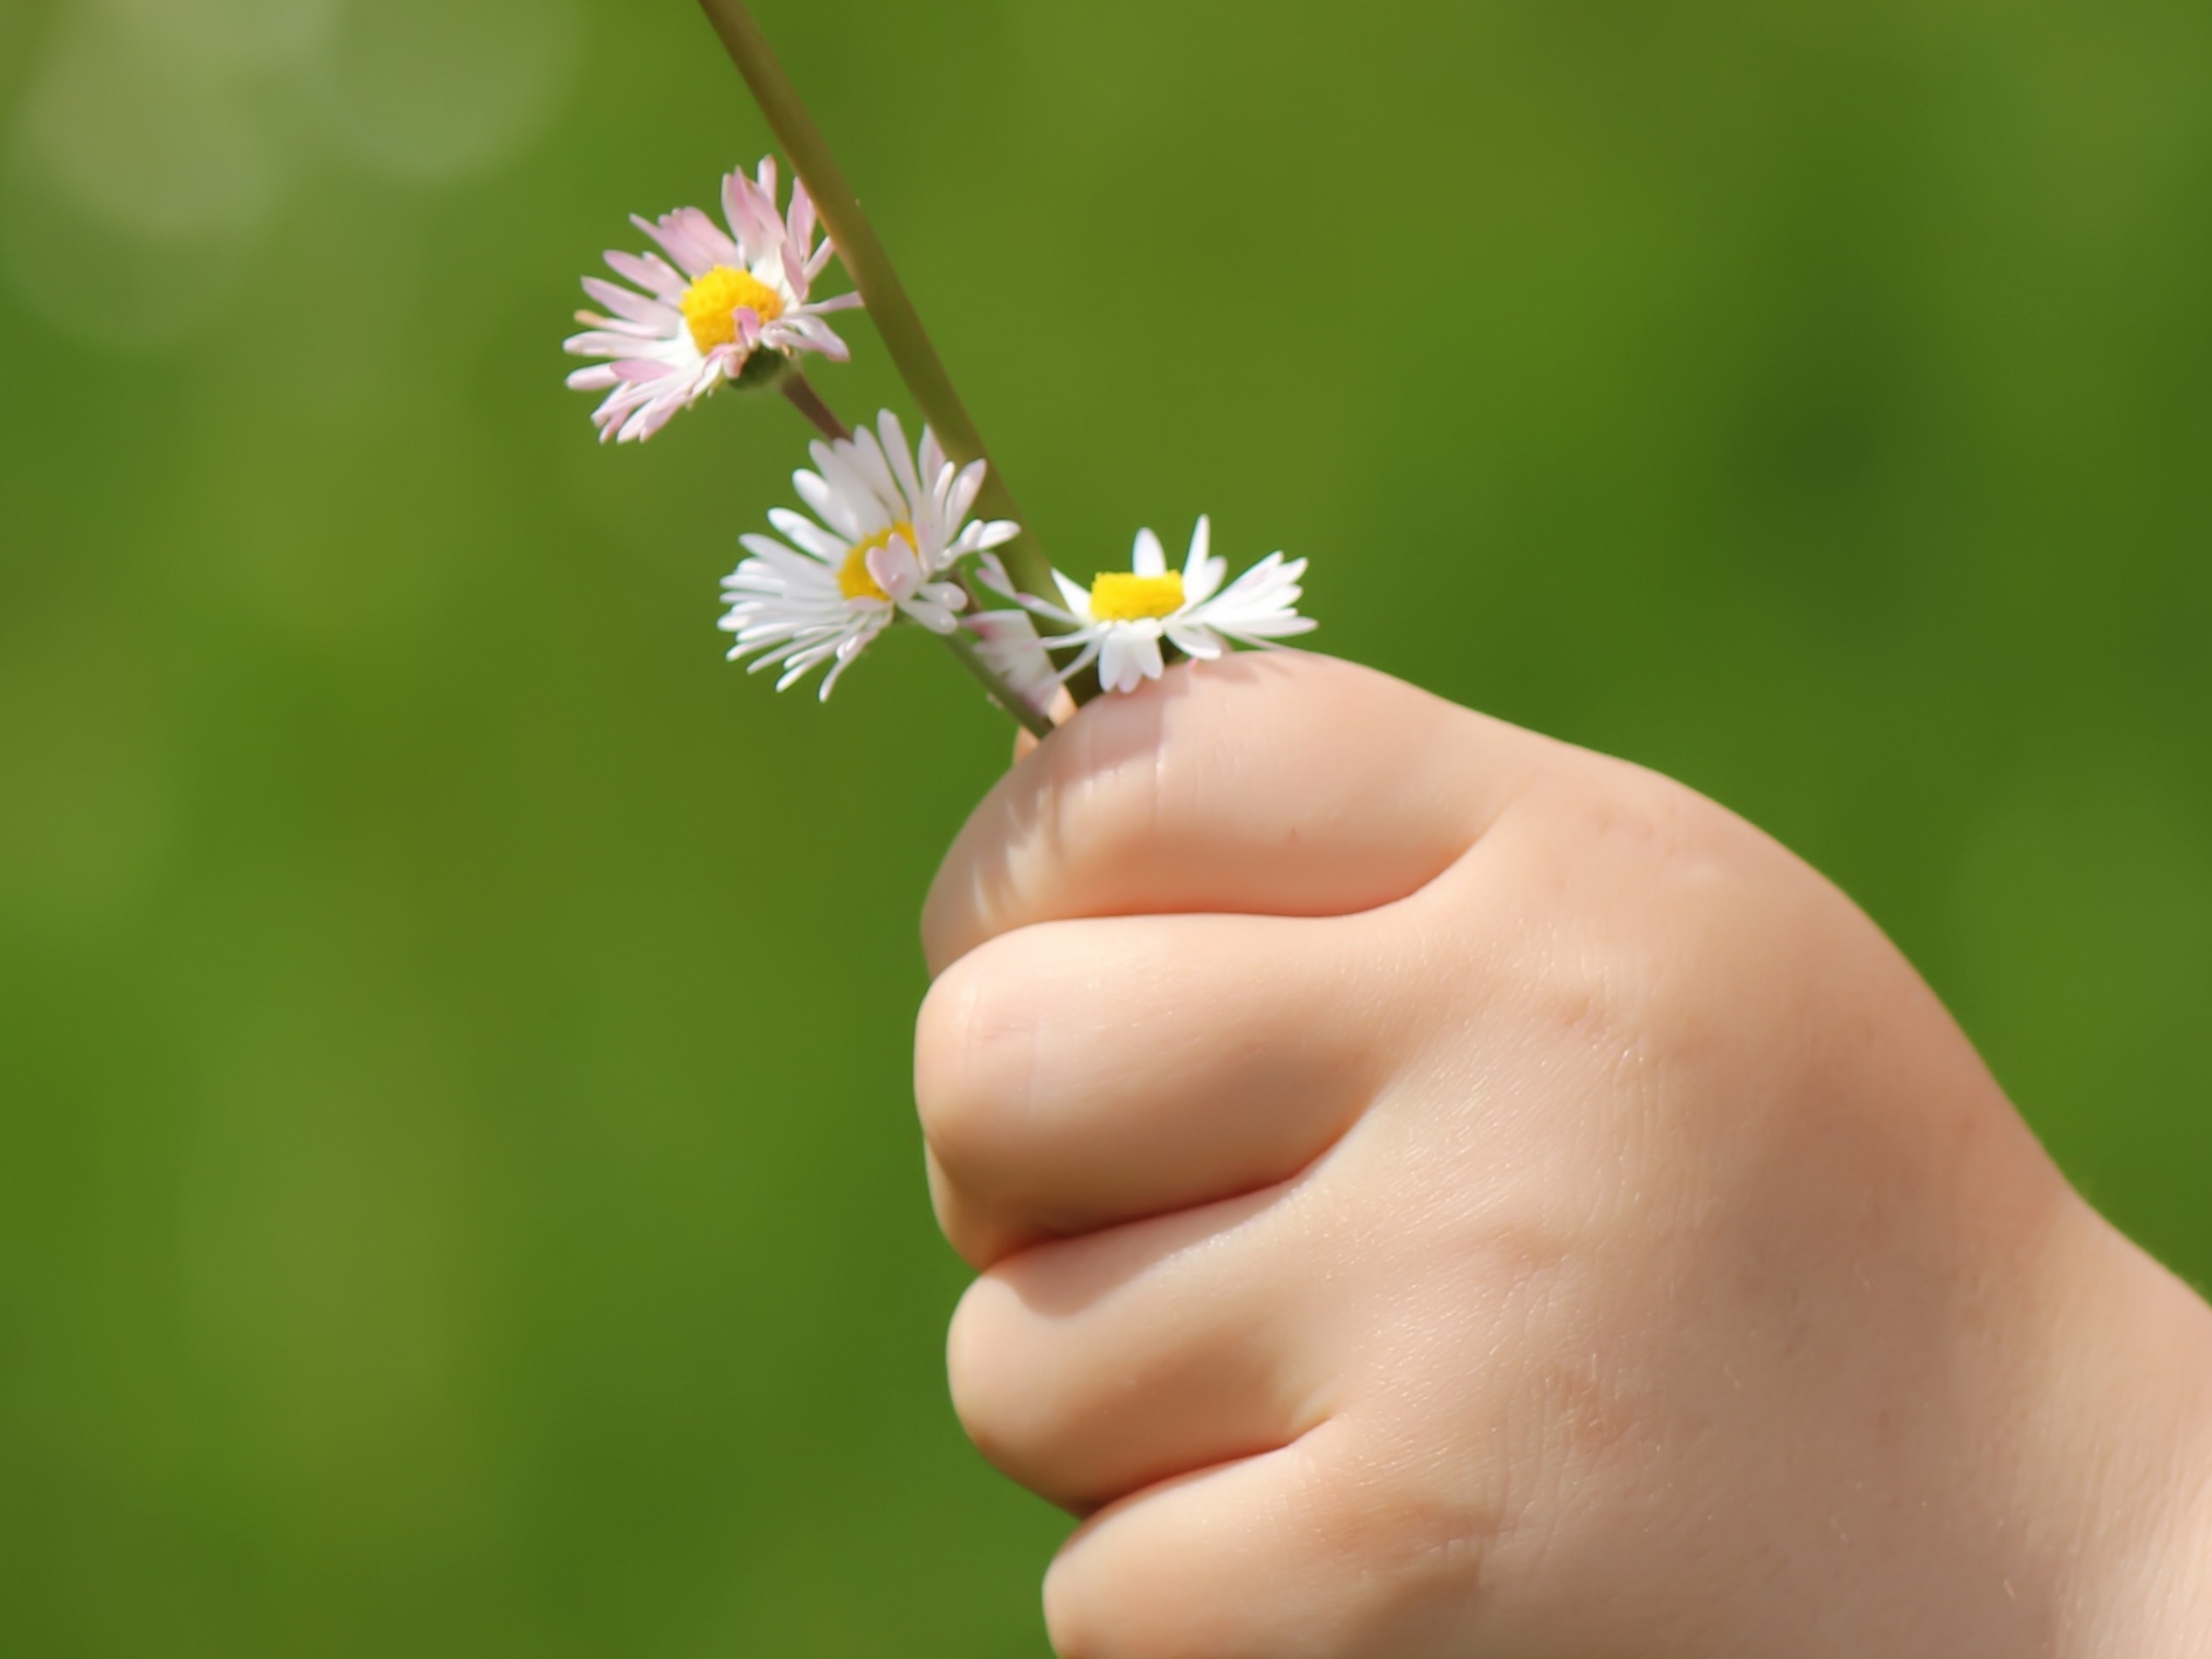 Child hand holding spring flowers